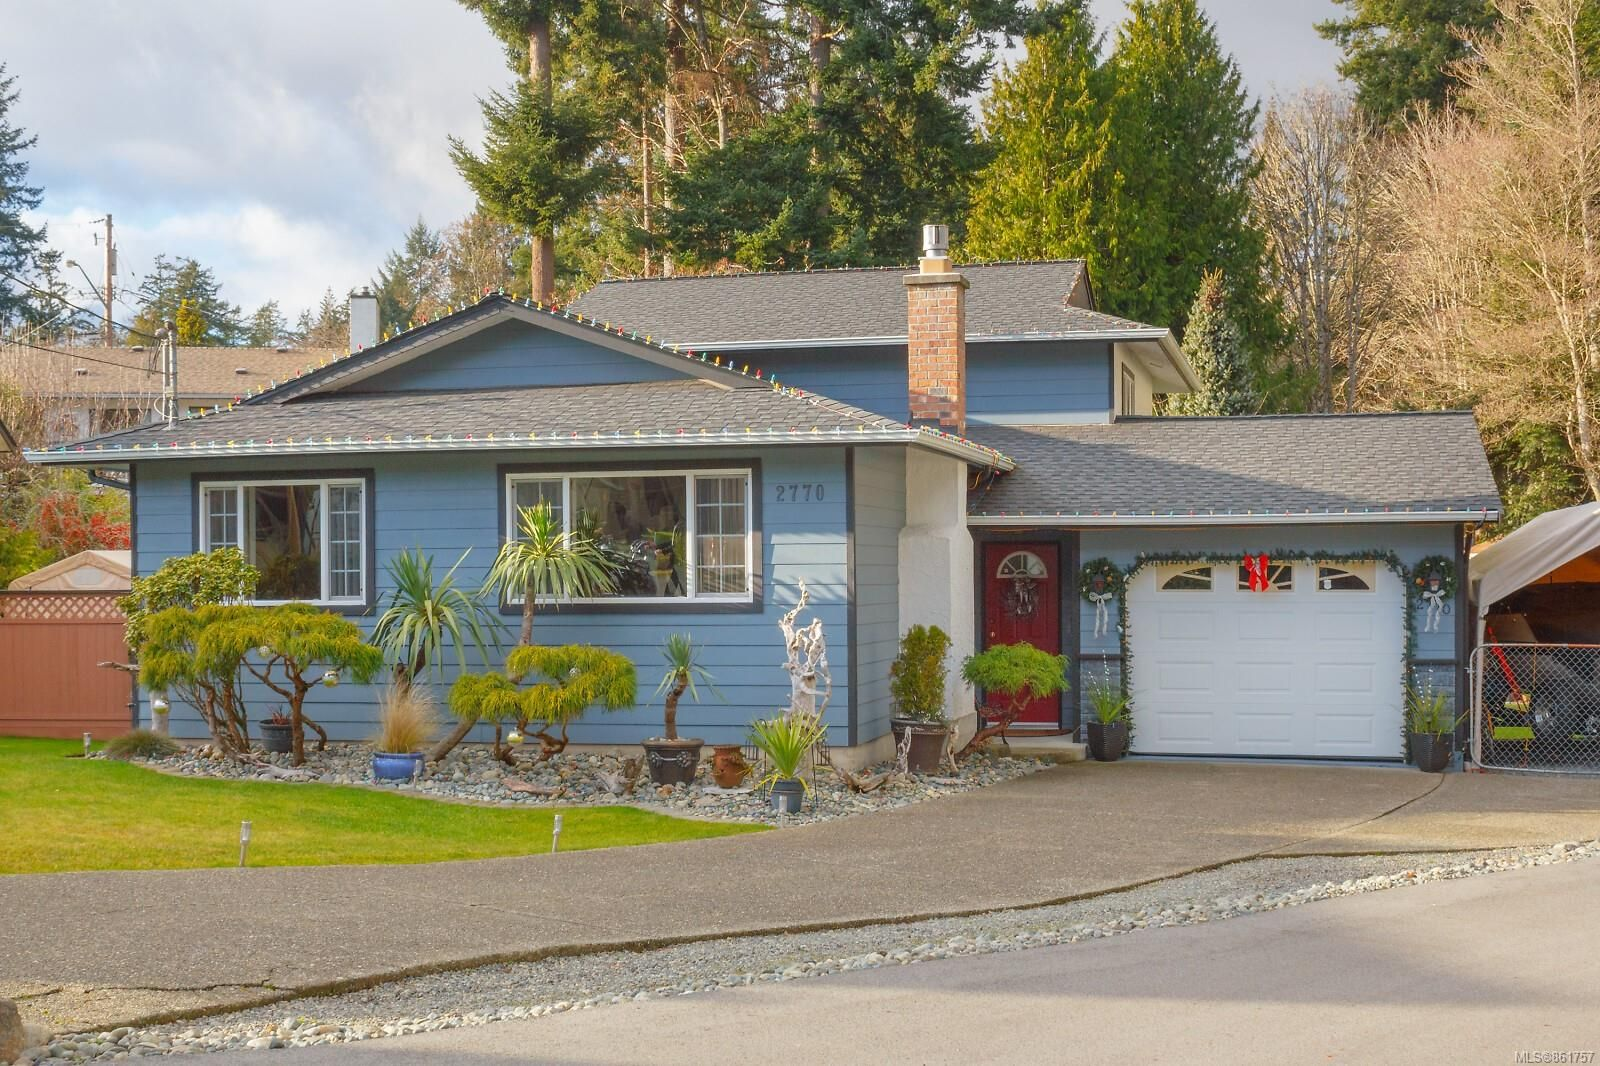 Main Photo: 2770 Kristina Pl in : La Goldstream House for sale (Langford)  : MLS®# 861757